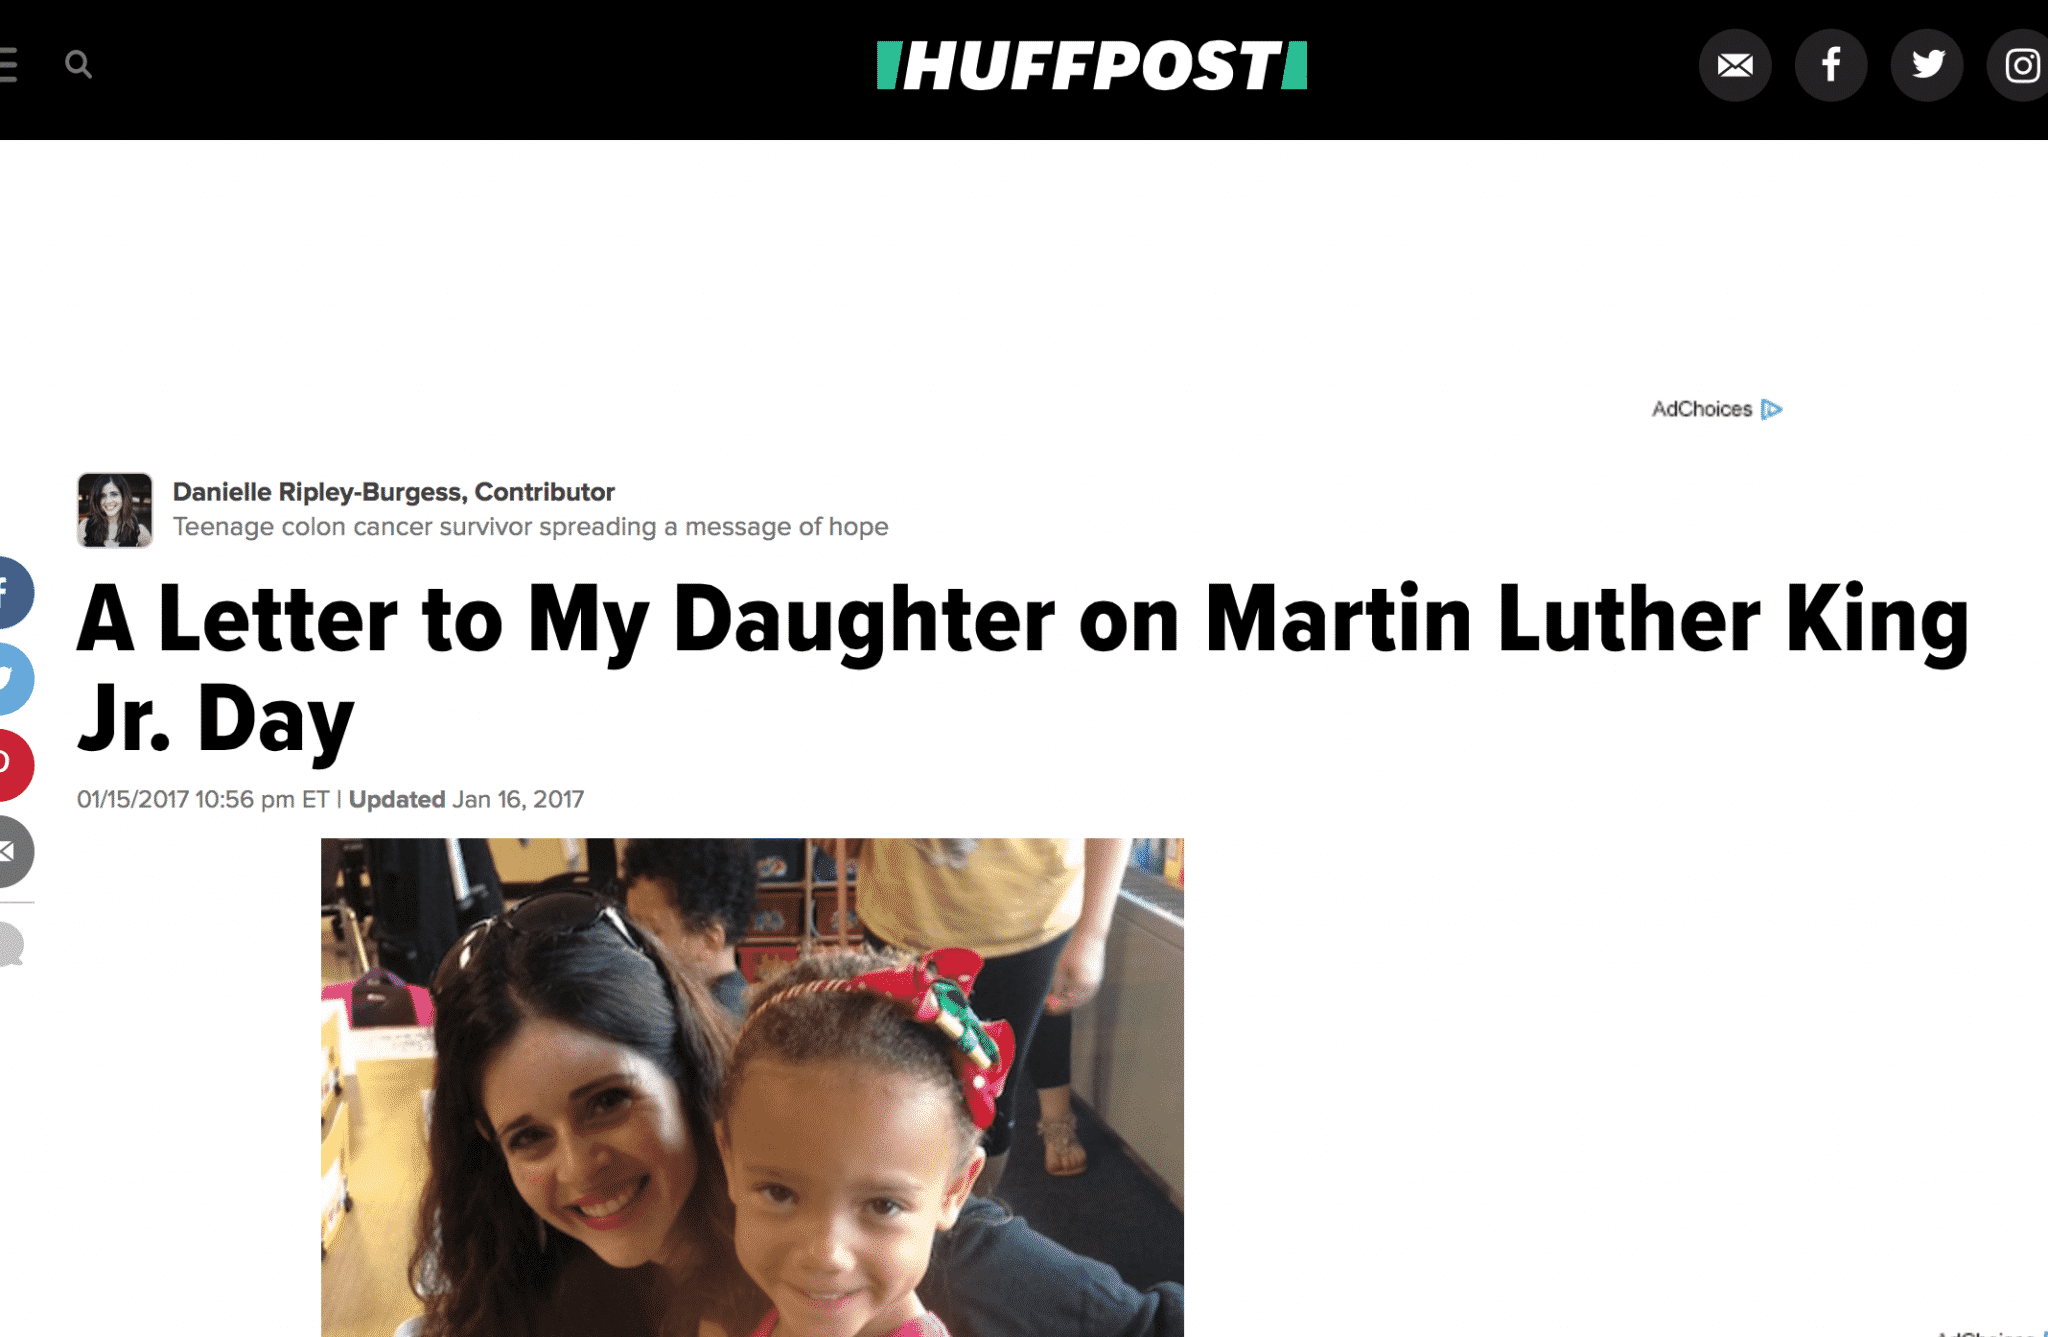 huff-post-blog-danielle-ripley-burgess